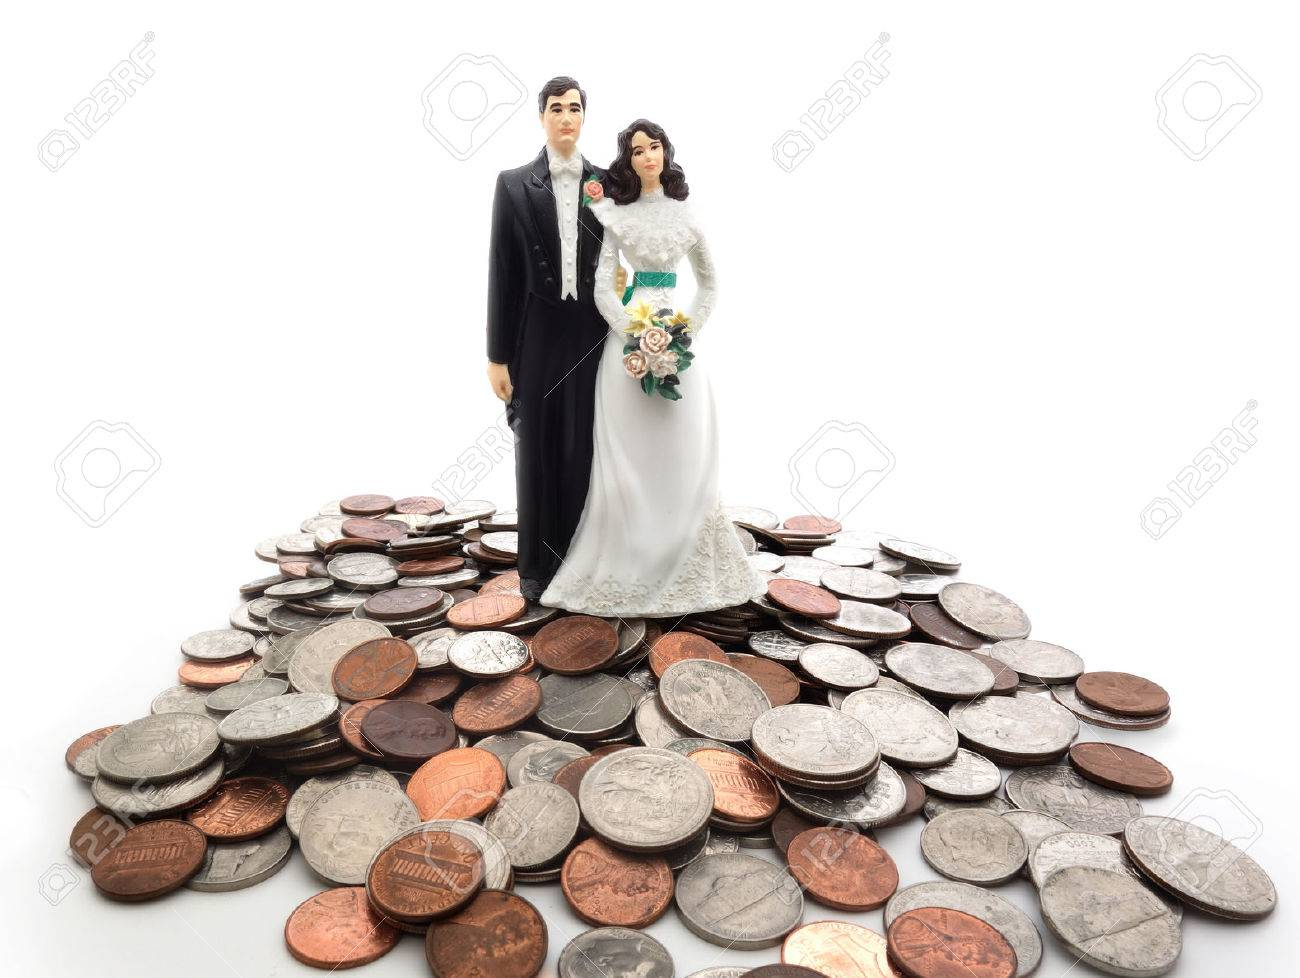 Plastic wedding couple on a pile of coins - money concept - 27699301